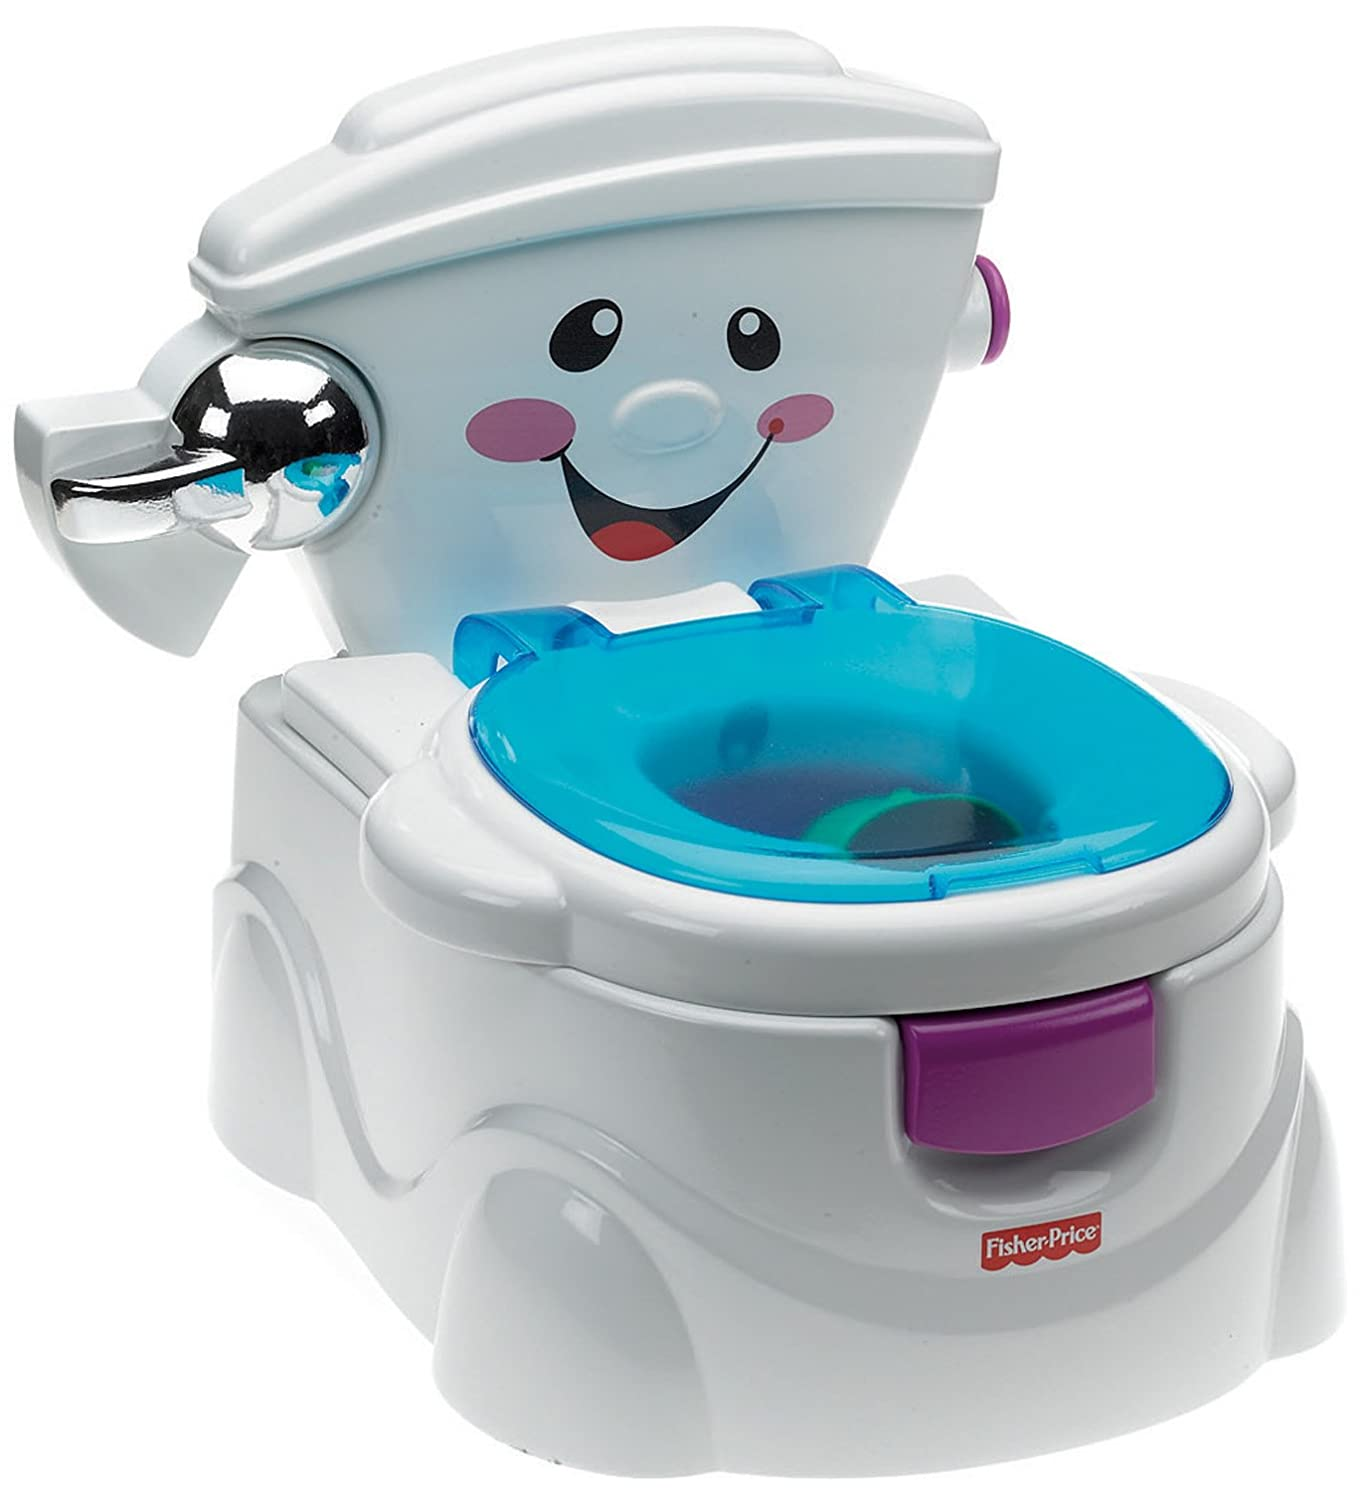 Olitas Baño Infantil:Fisher-Price Potty Training Toilet Musical